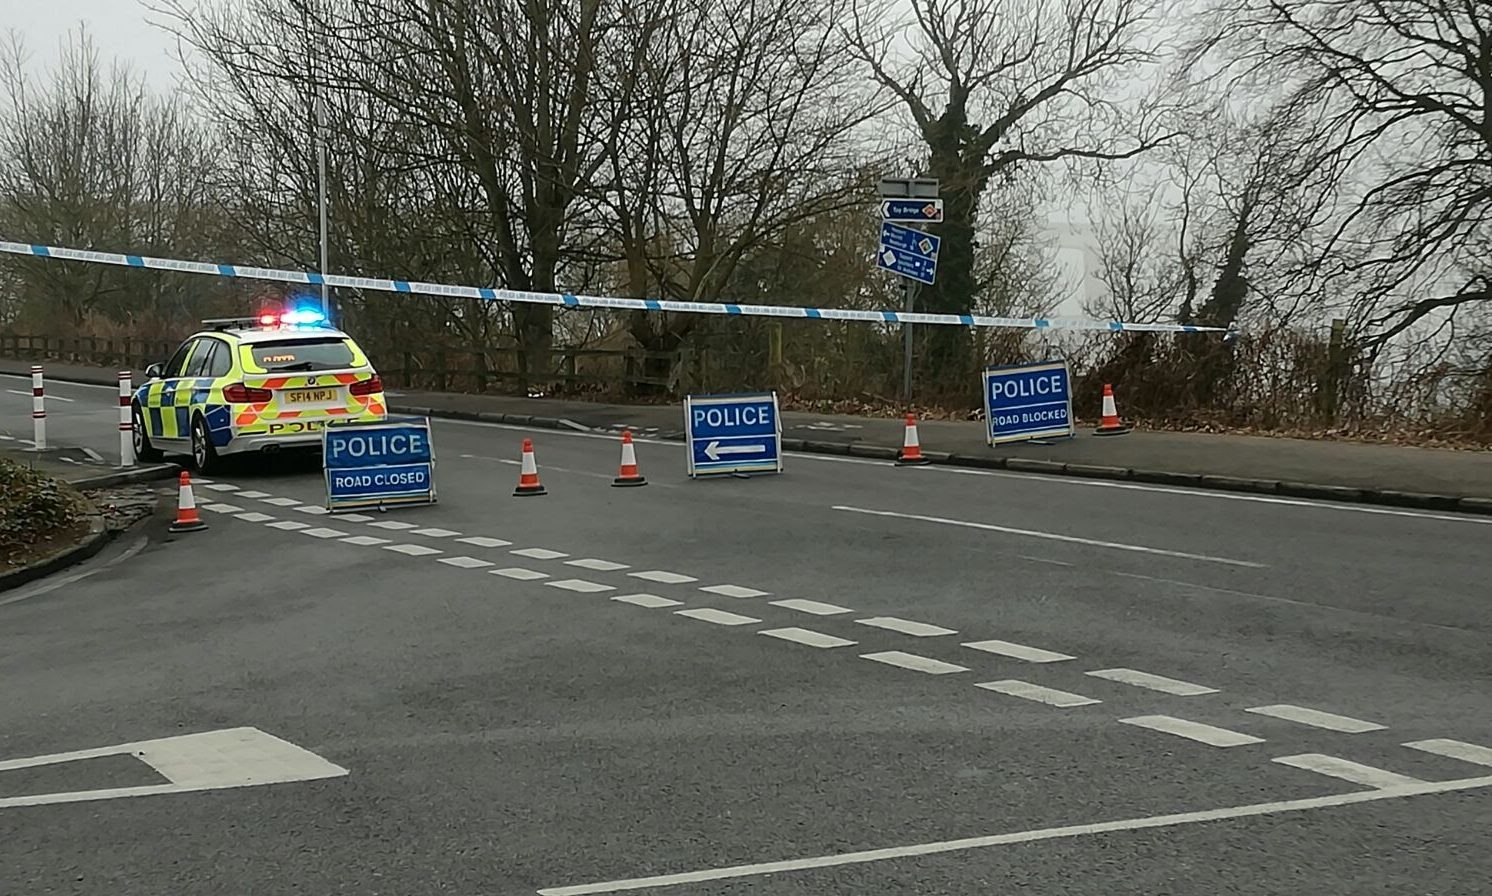 Police are blocking the road into Newport.